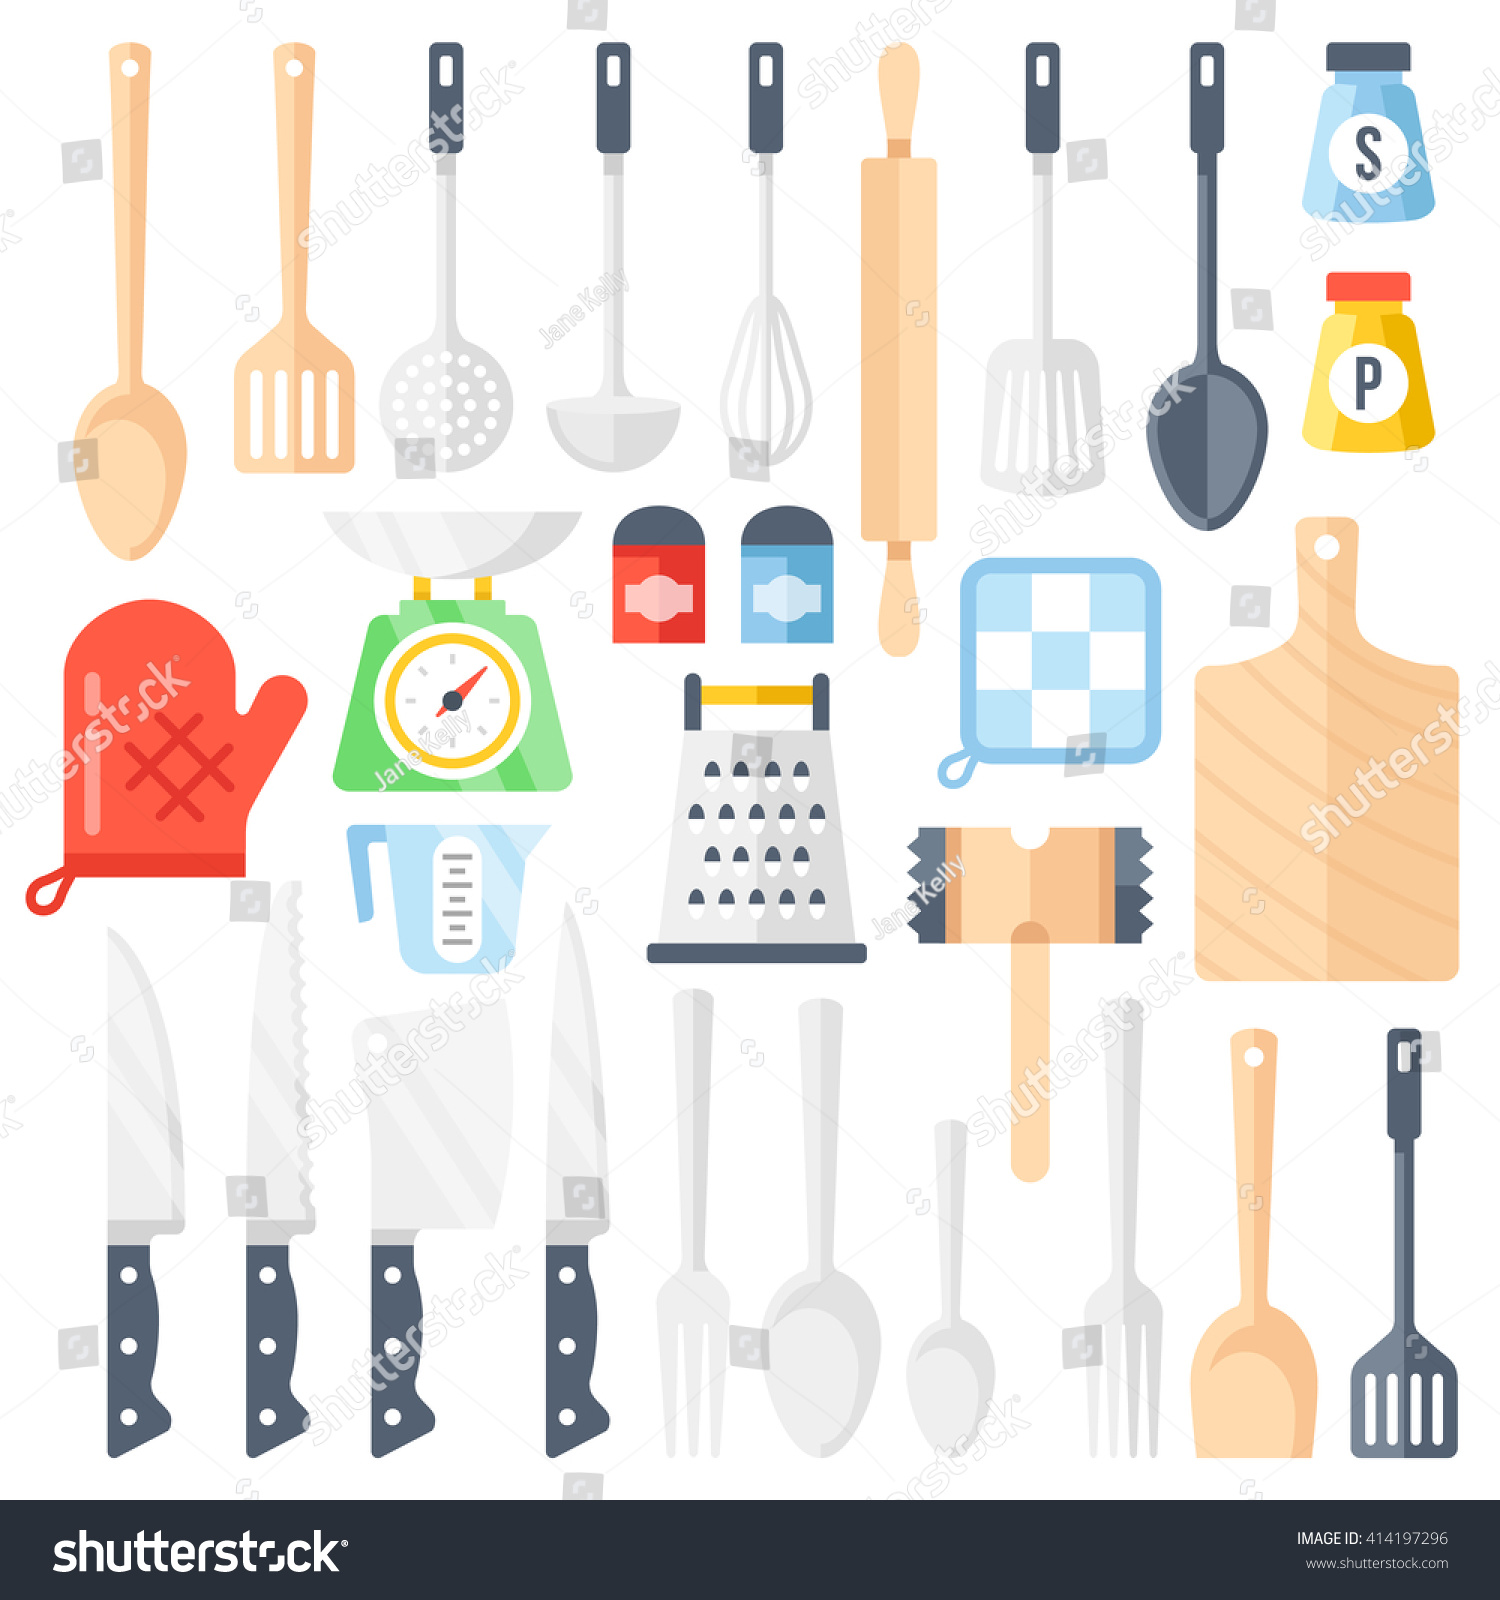 Kitchen tools cooking equipment kitchen utensils stock for Culinary kitchen equipment